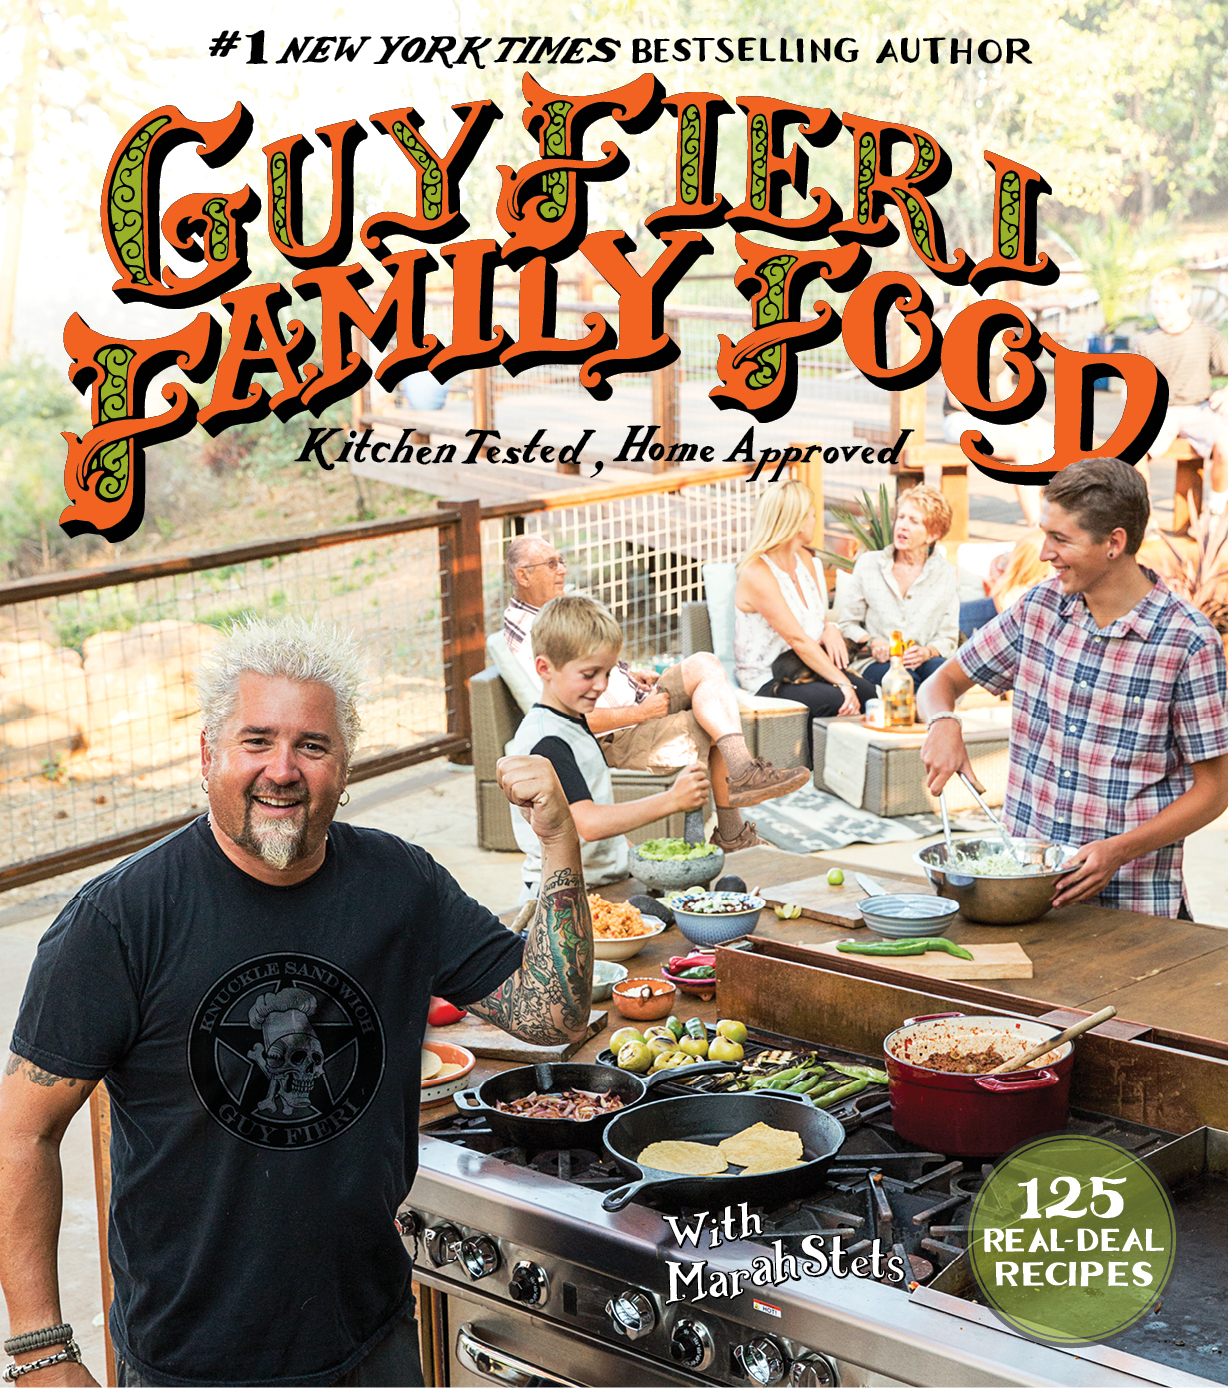 Guy Fieri S New Recipe Book Is All About The Meals He Makes For His Family Access Online